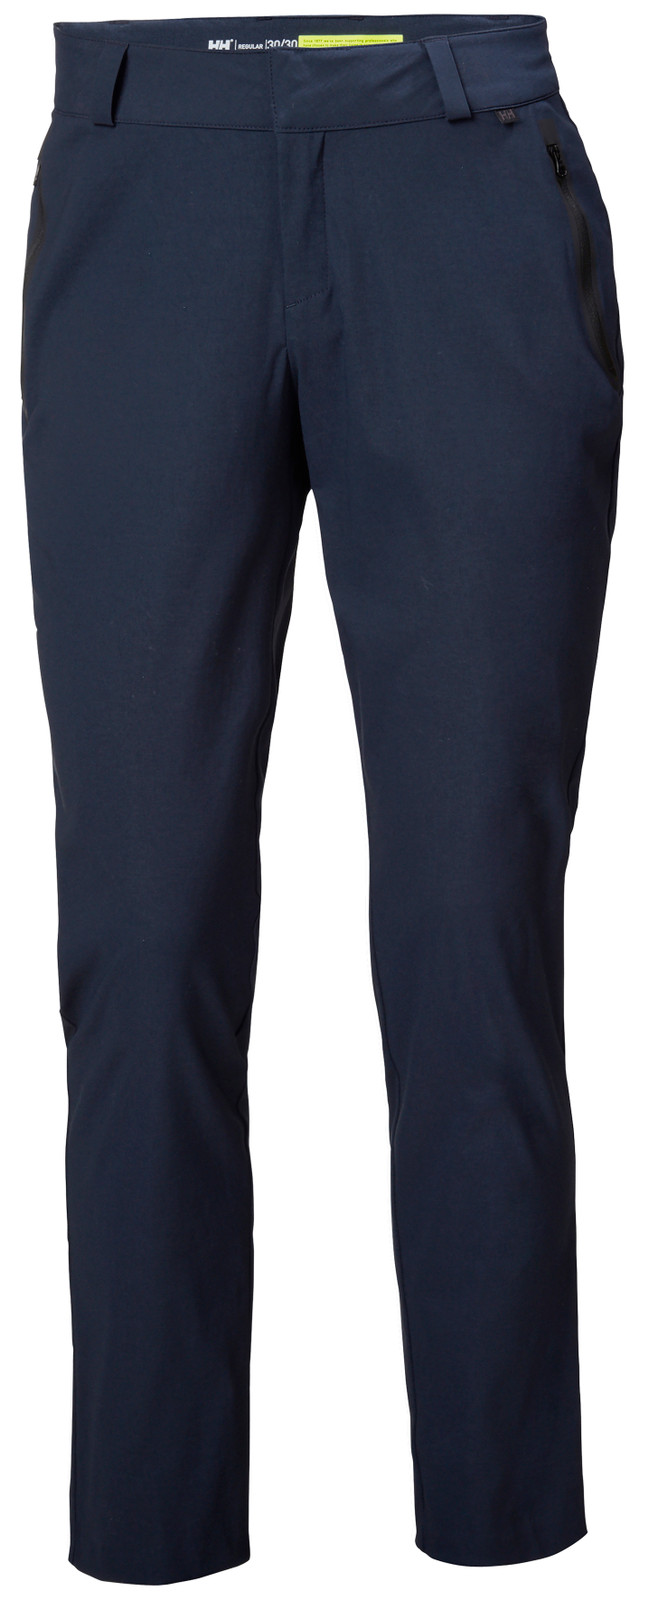 Helly Hansen HP Racing Pant, Women's - Navy, 34010-597